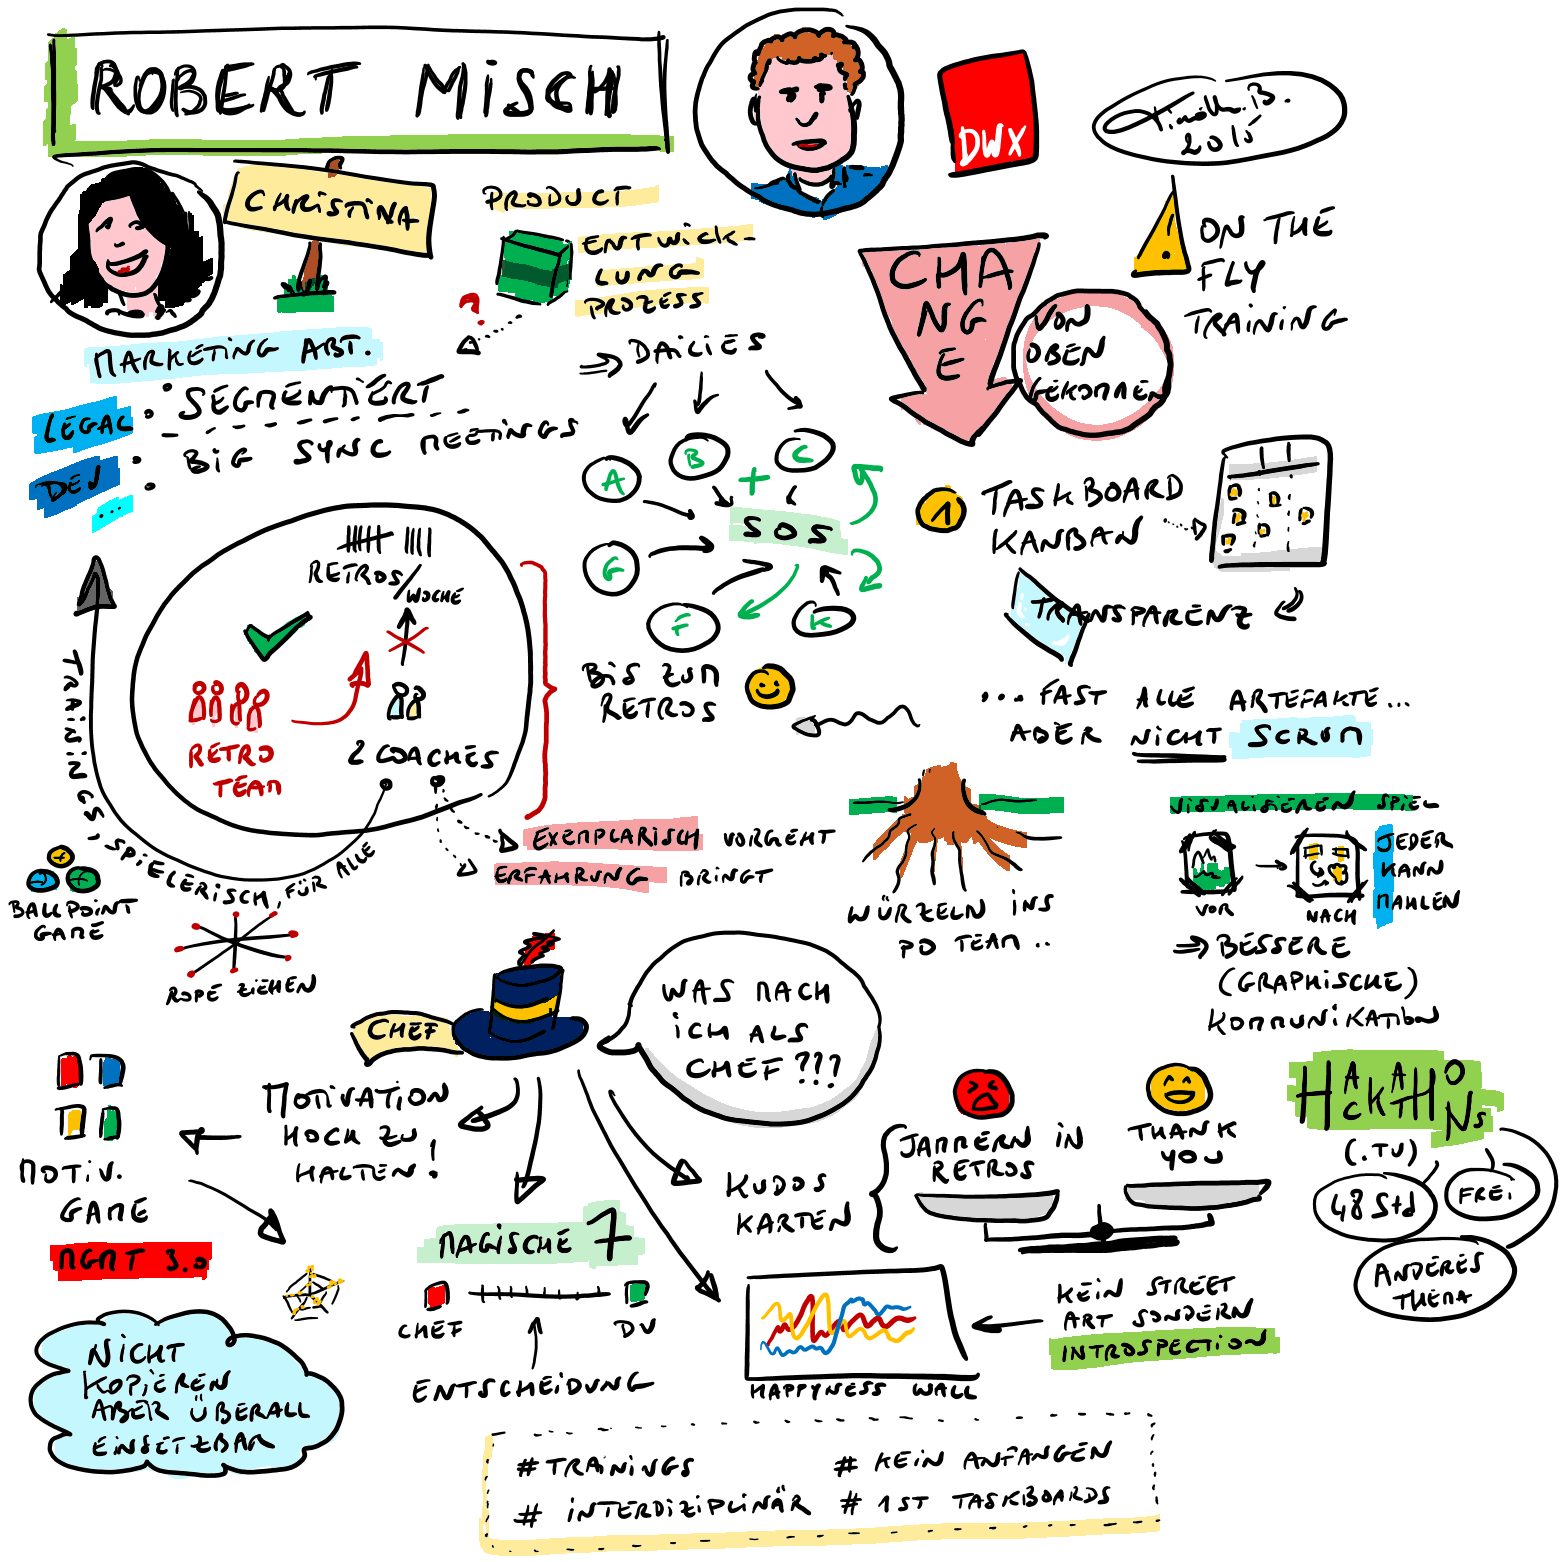 Agile in a Marketing department with Robert Misch